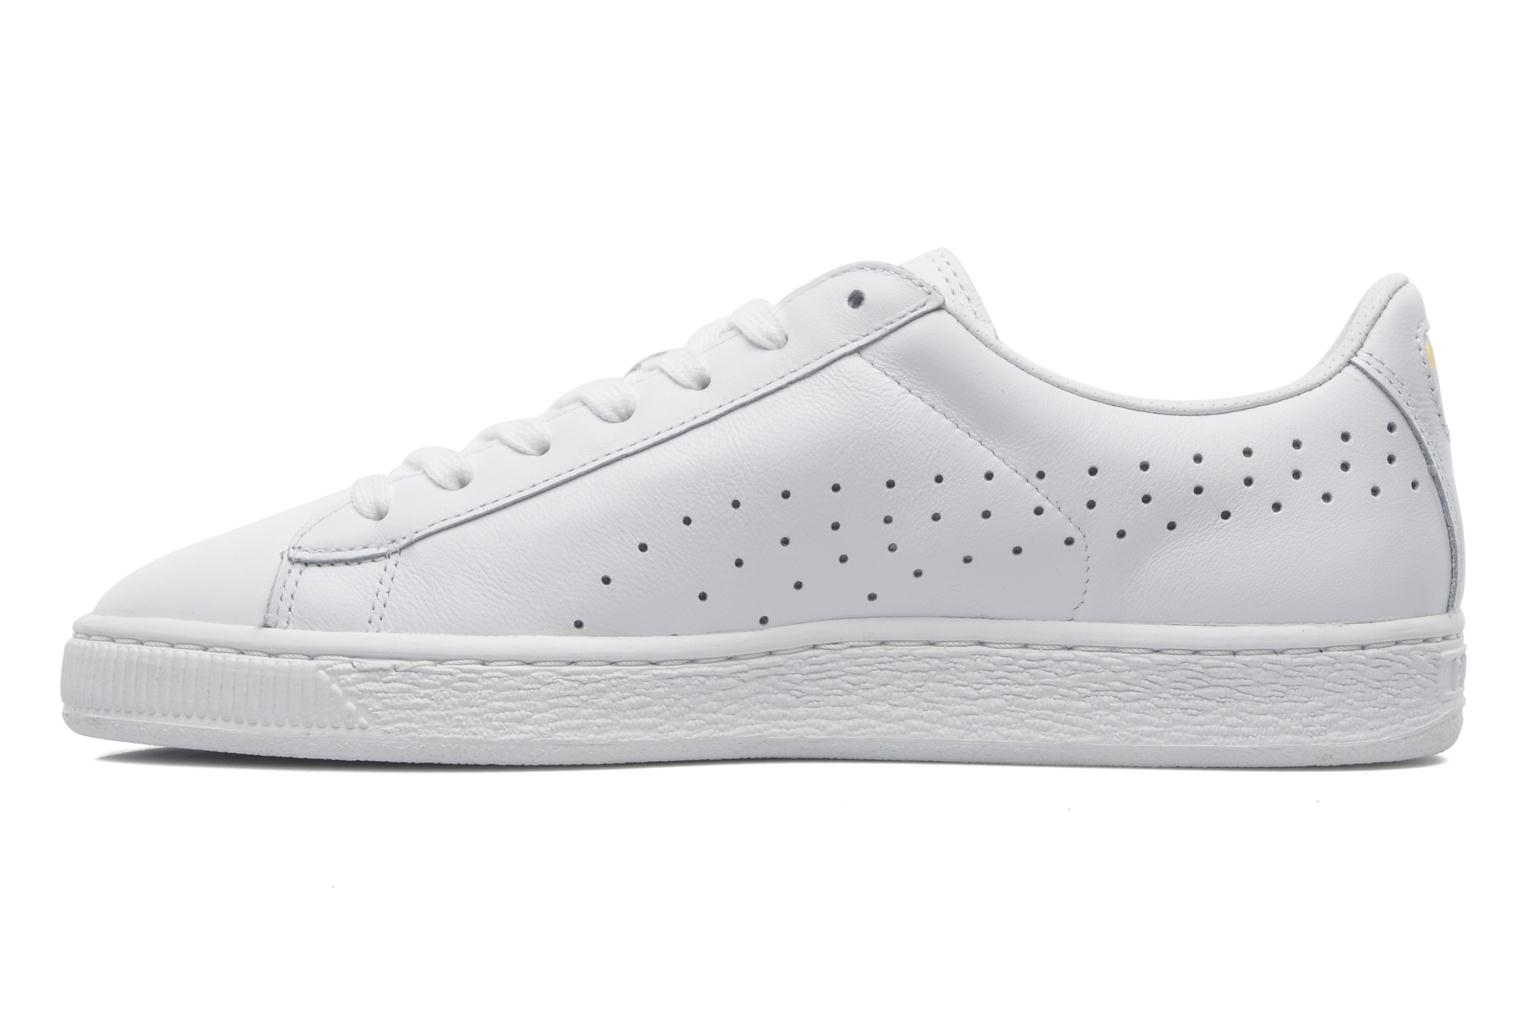 puma basket classic citi series trainers in white at 193965. Black Bedroom Furniture Sets. Home Design Ideas